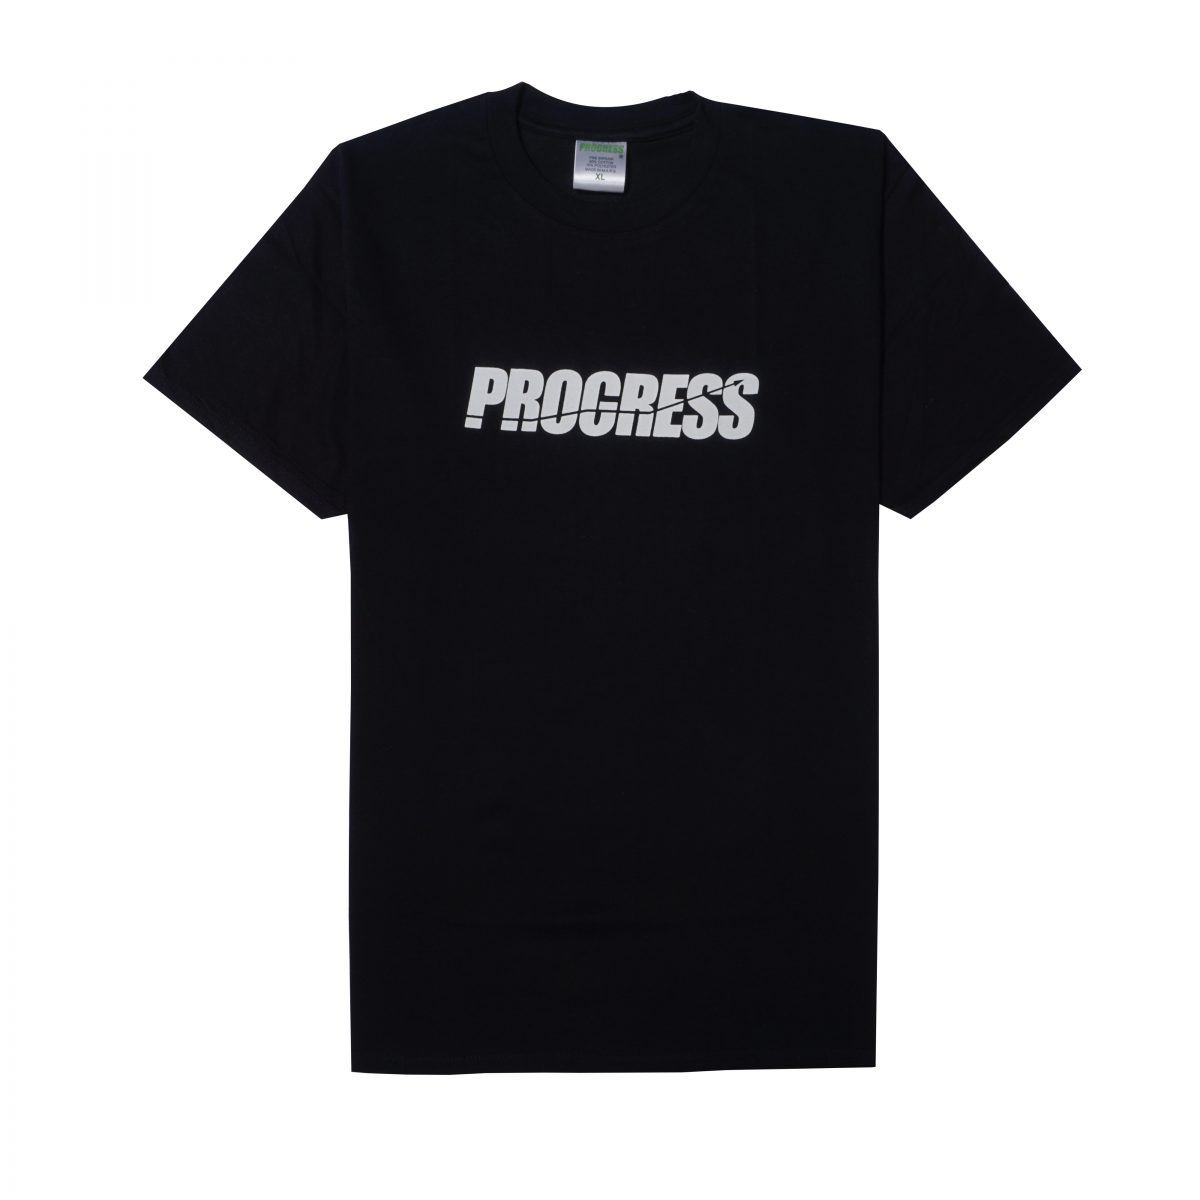 LOGO TEE WHITE ON BLACK